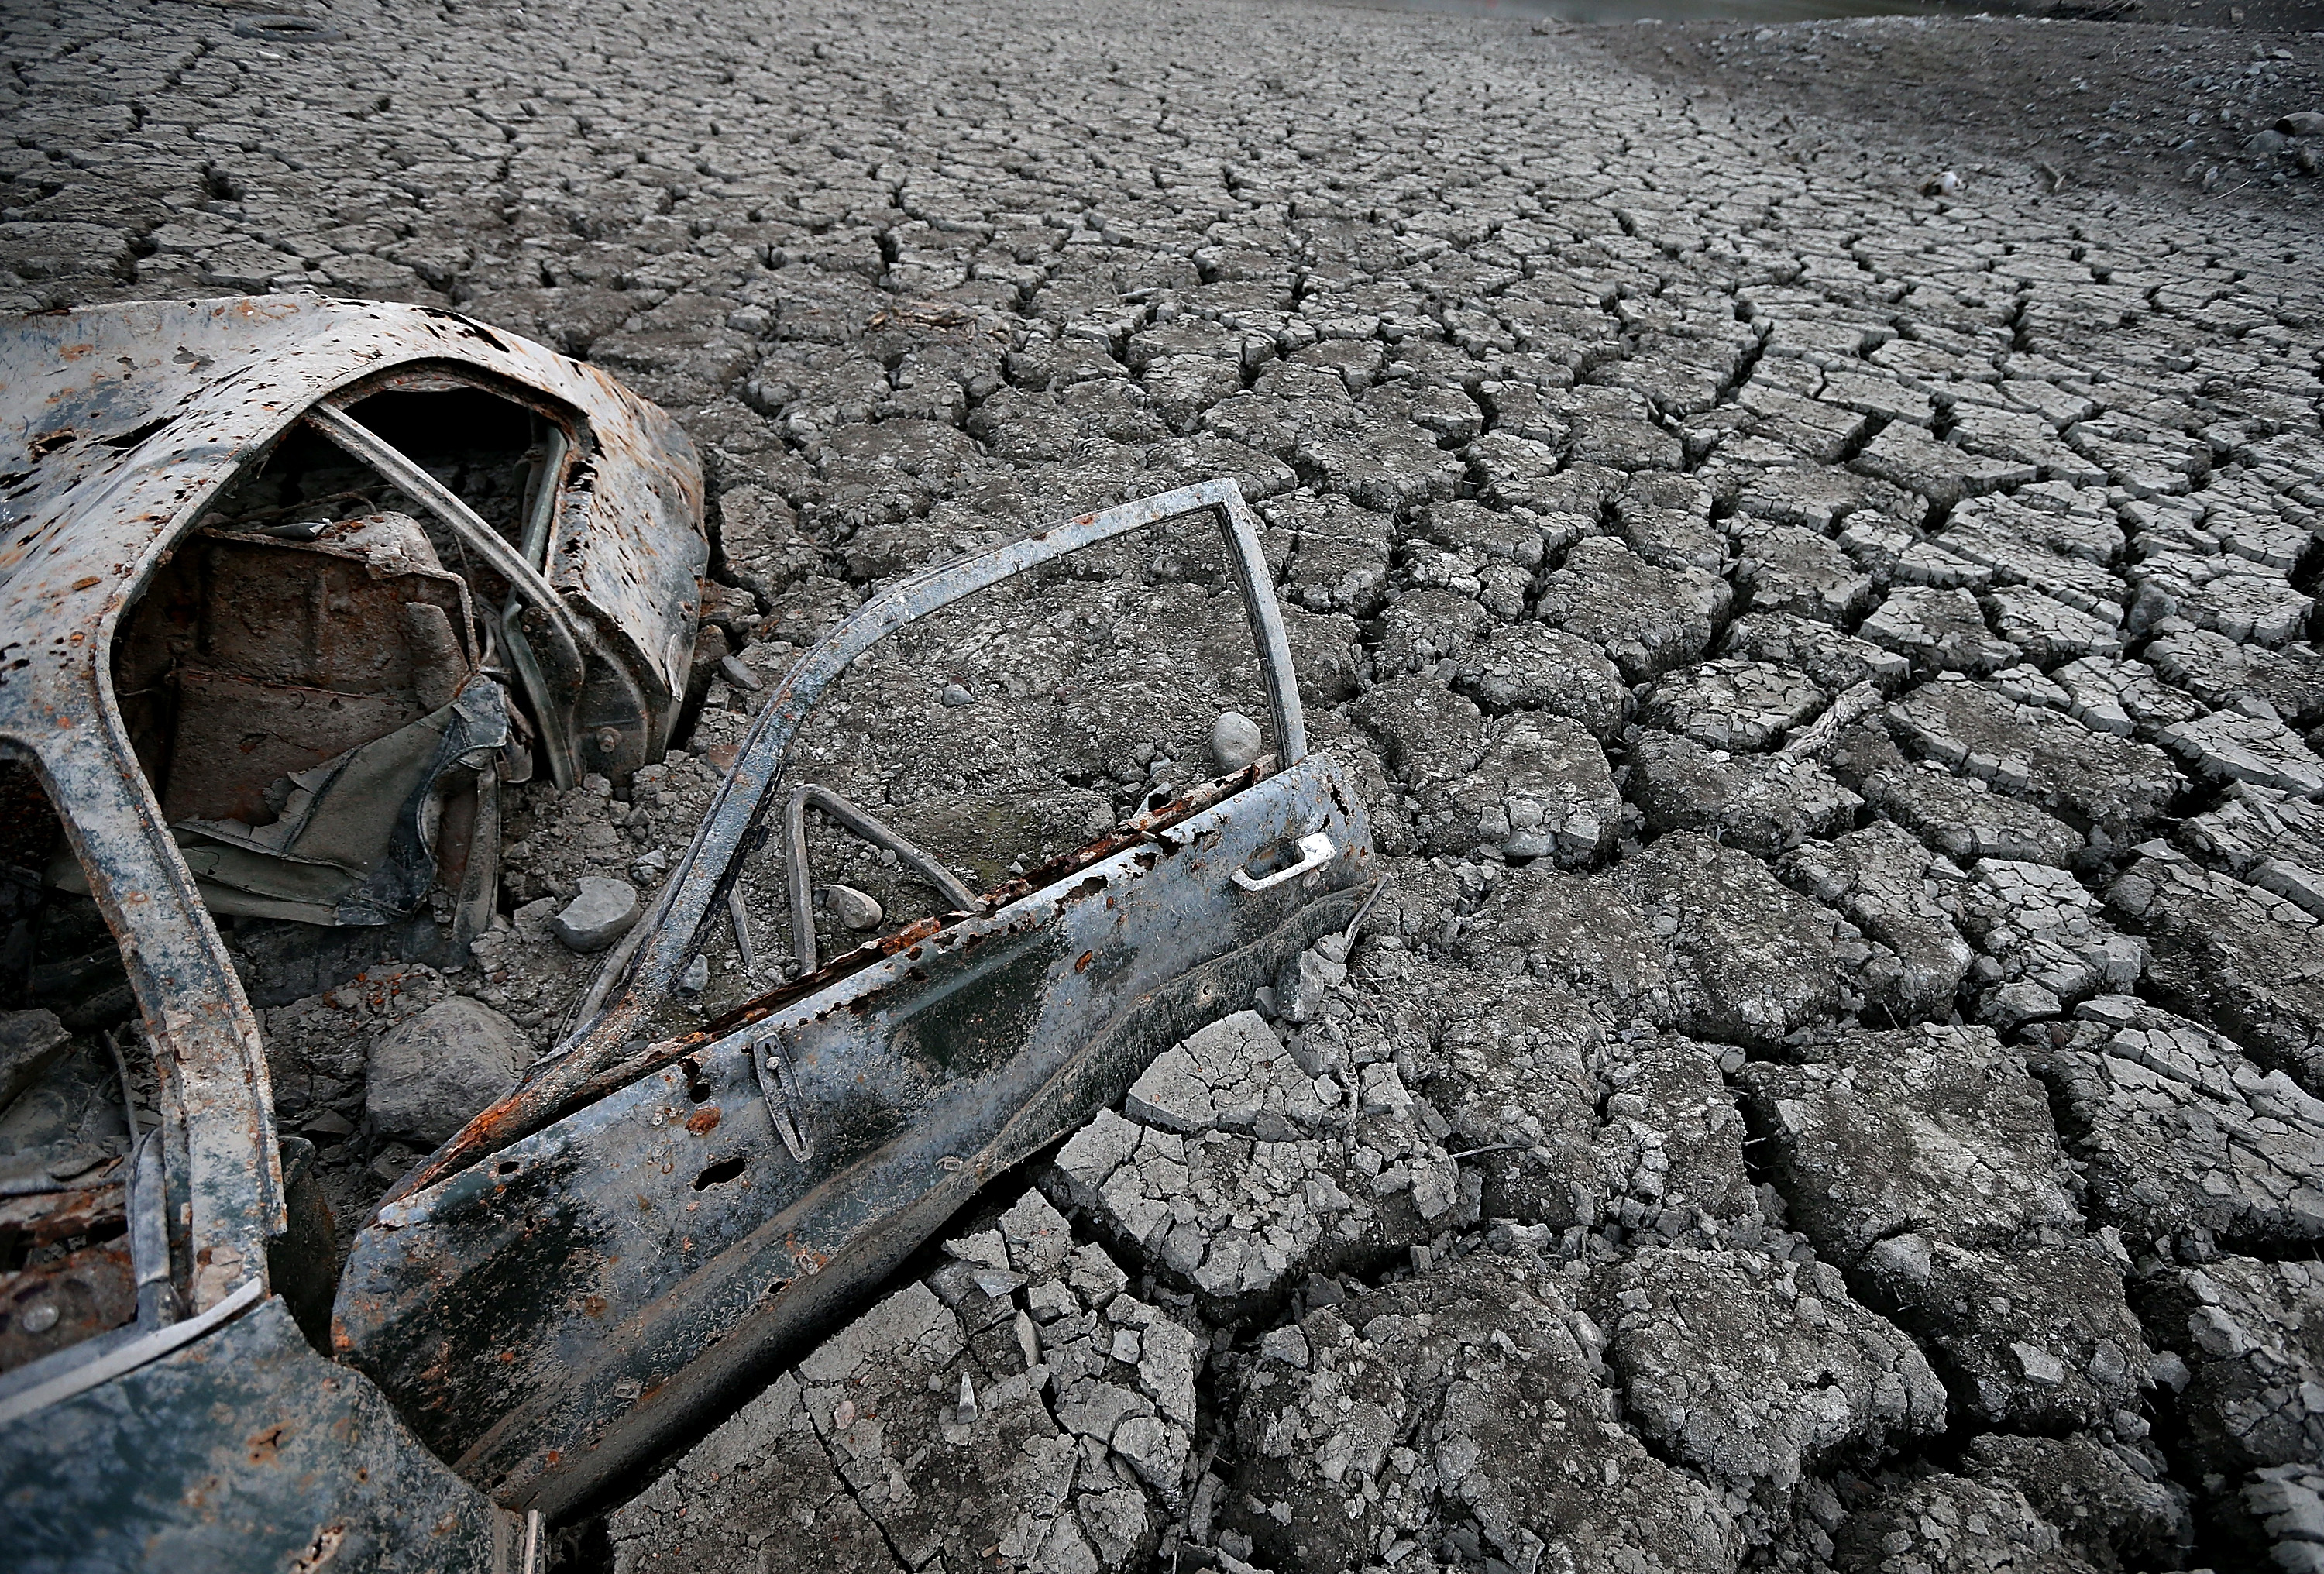 A car sits in dried and cracked earth of what was the bottom of the Almaden Reservoir on Jan. 28, 2014 in San Jose, Calif.